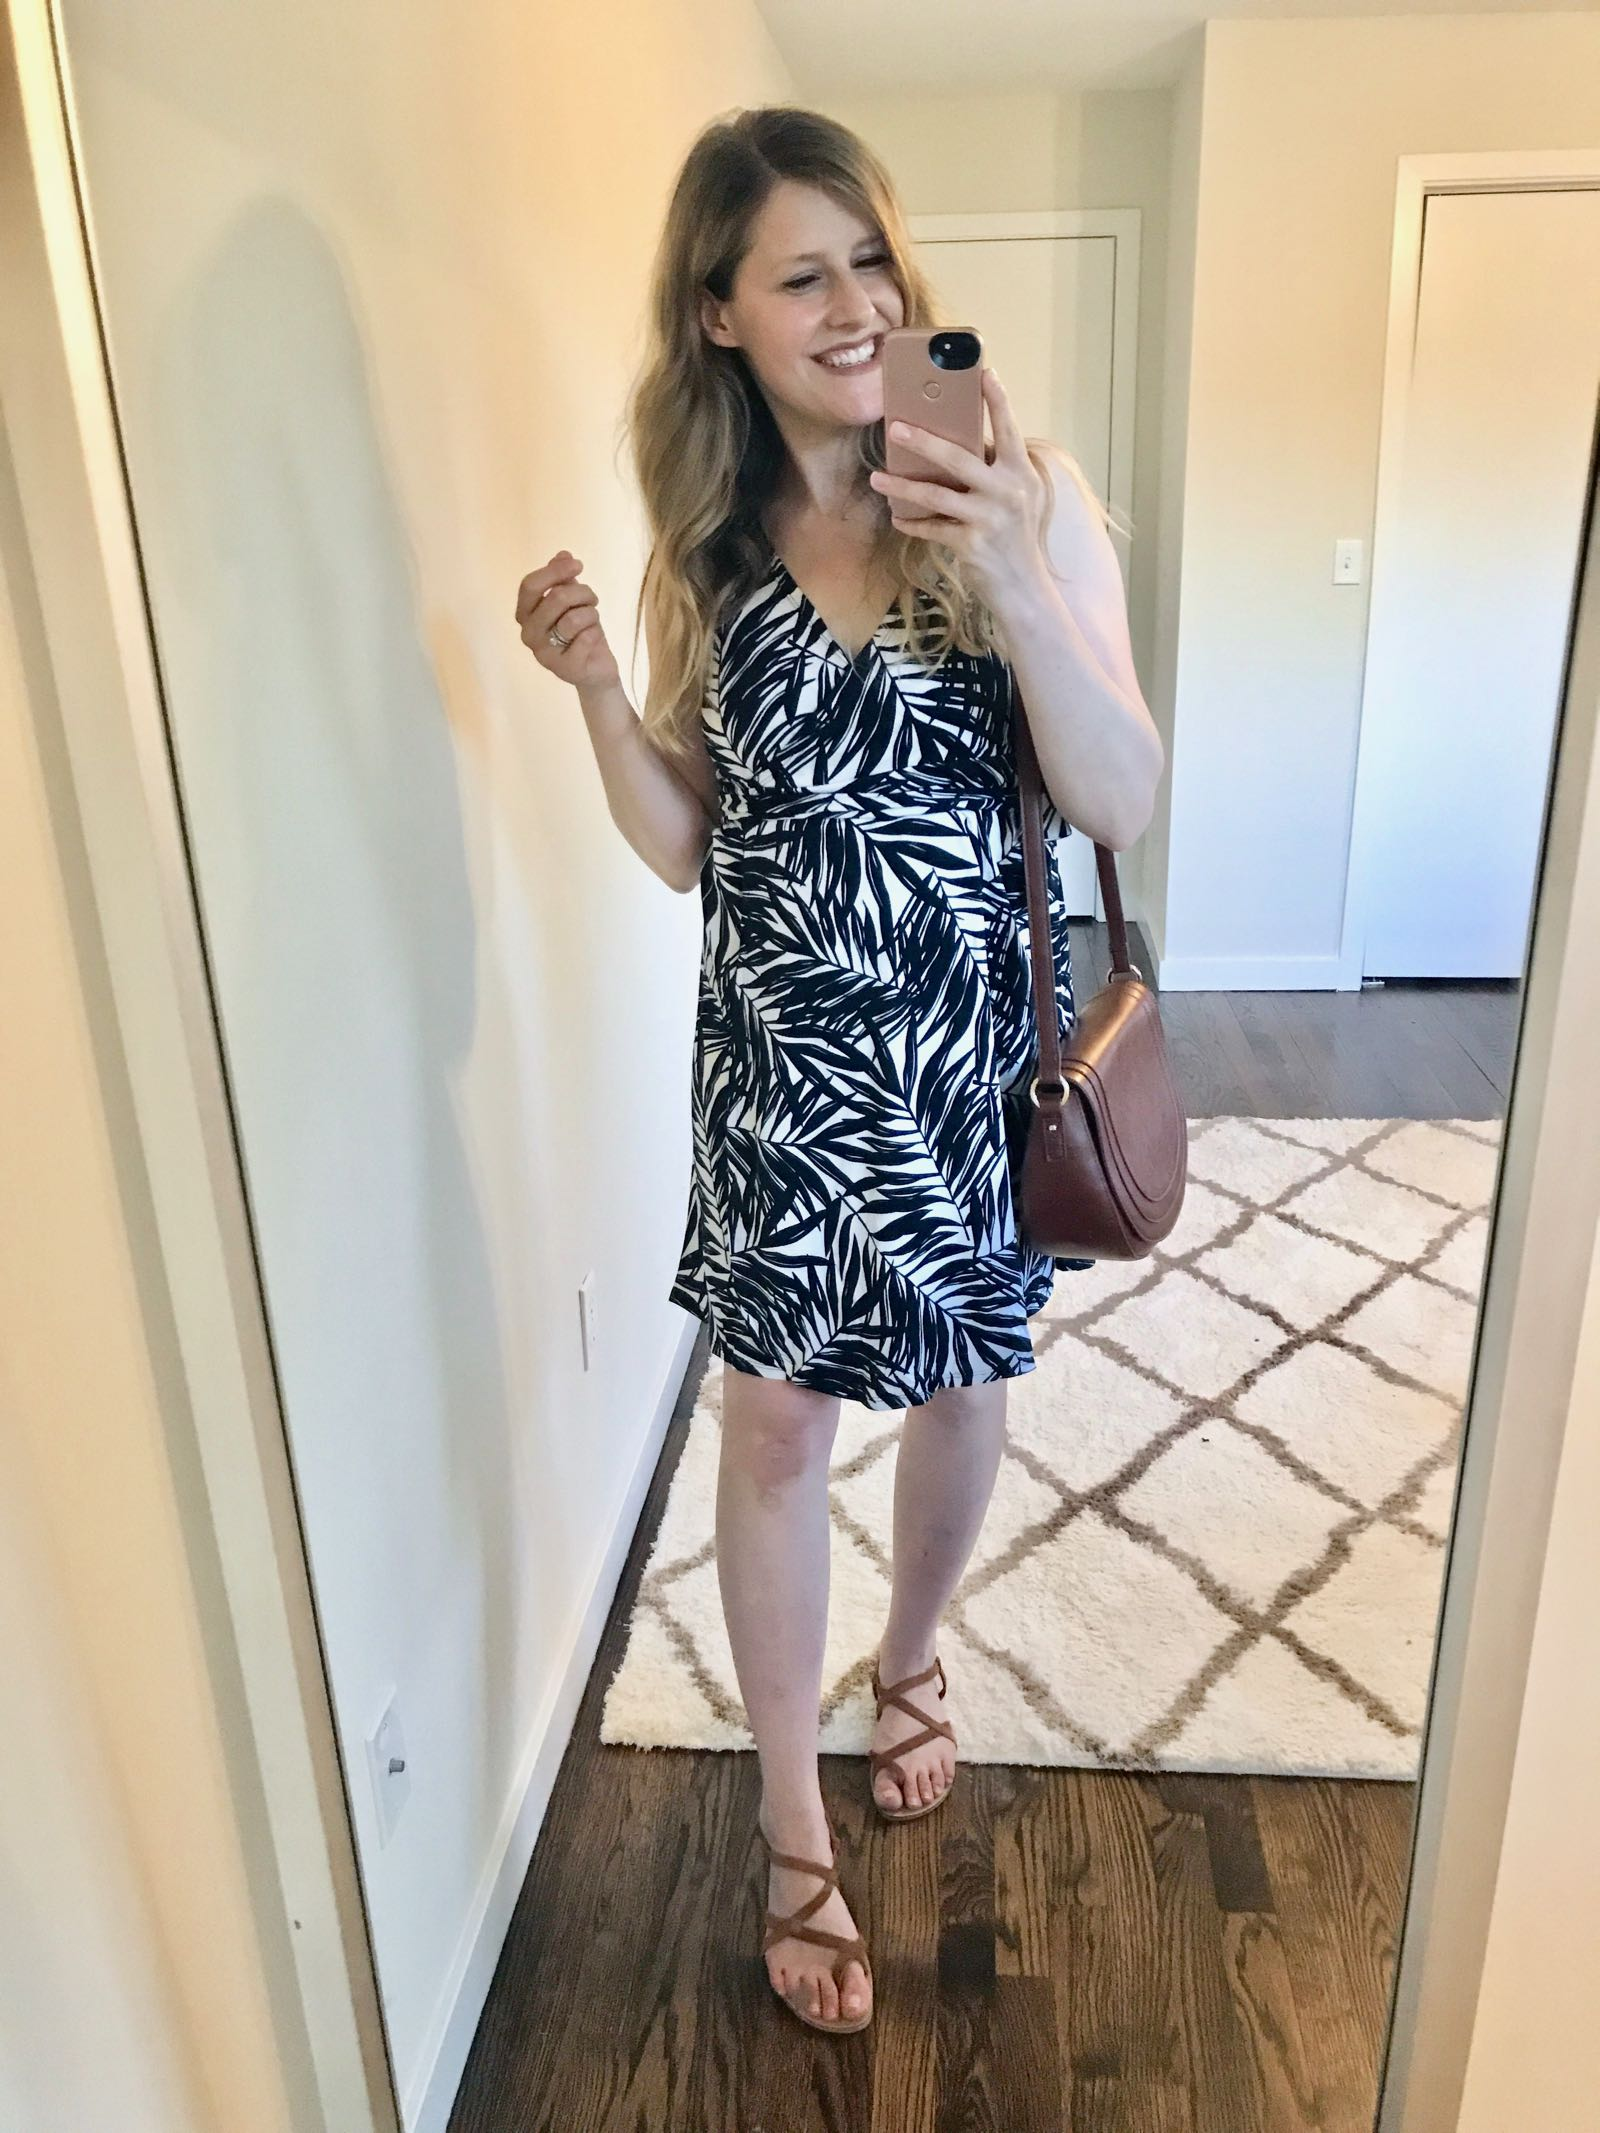 Palm print dress by Everly Grey - maternity and breastfeeding friendly!